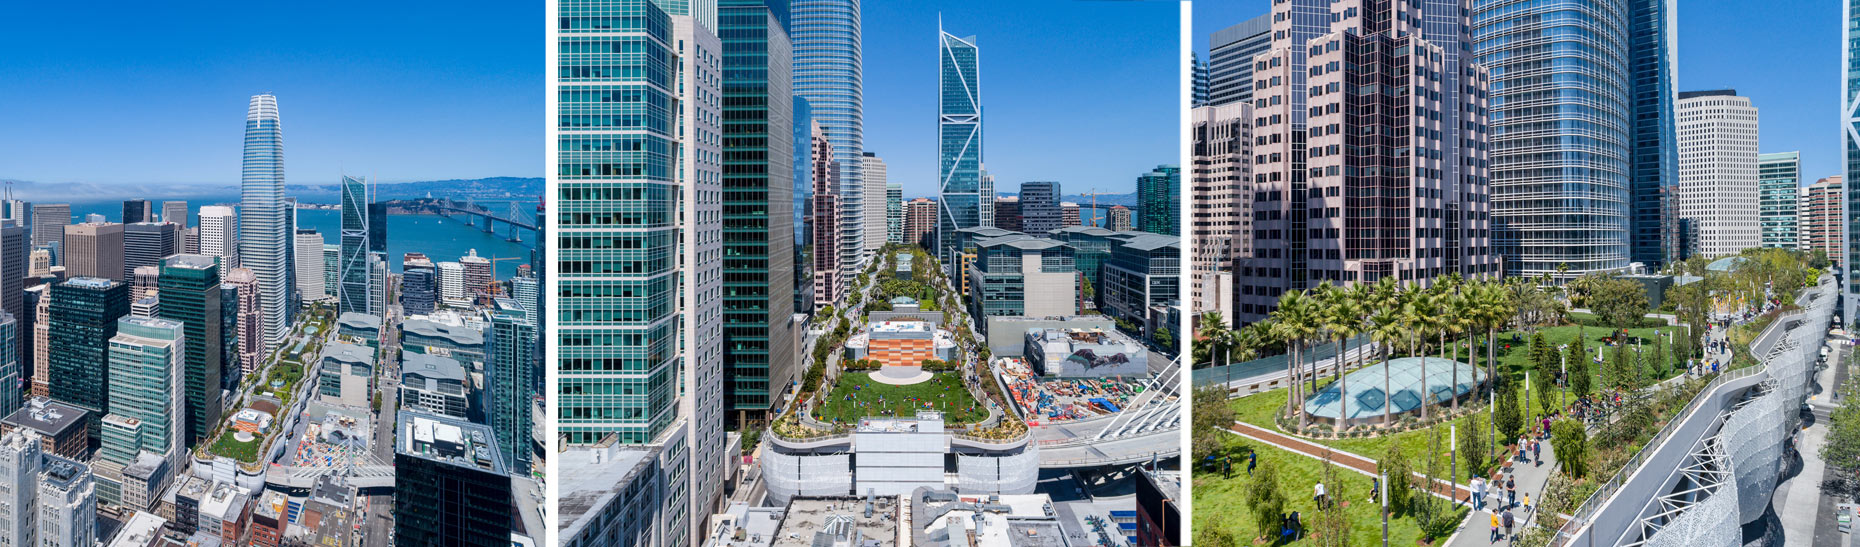 Salesforce Transit Center, San Francisco